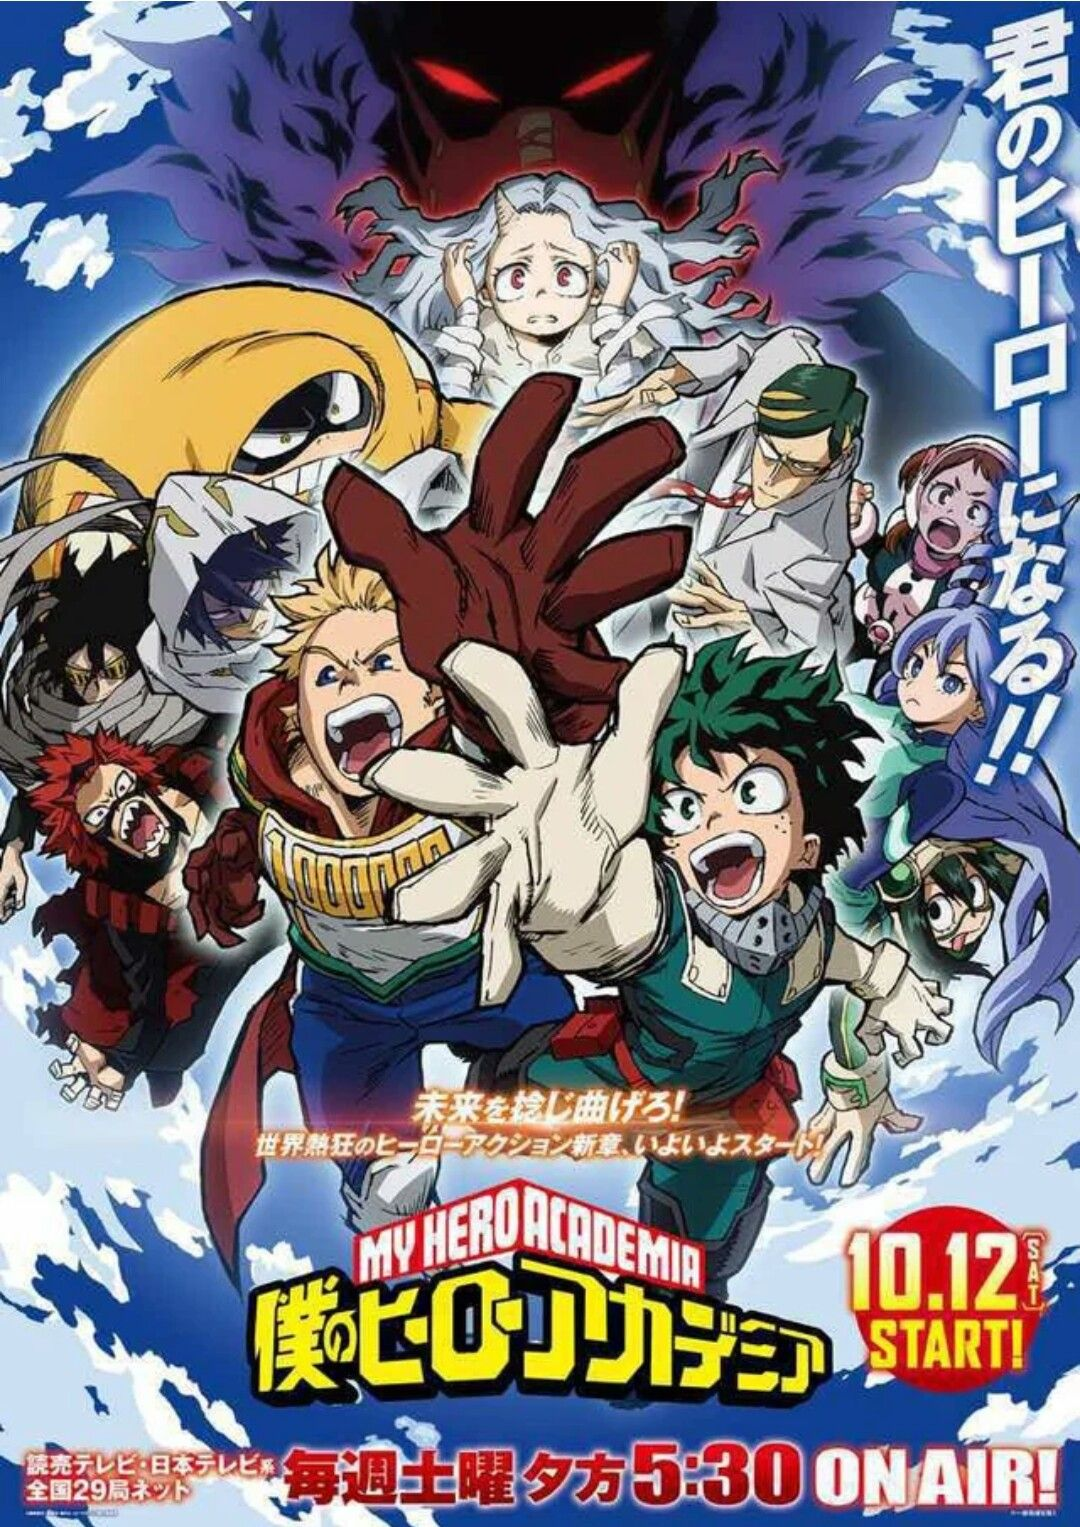 Boku No Hero Season 4 Herois Izuku Midoriya Anime